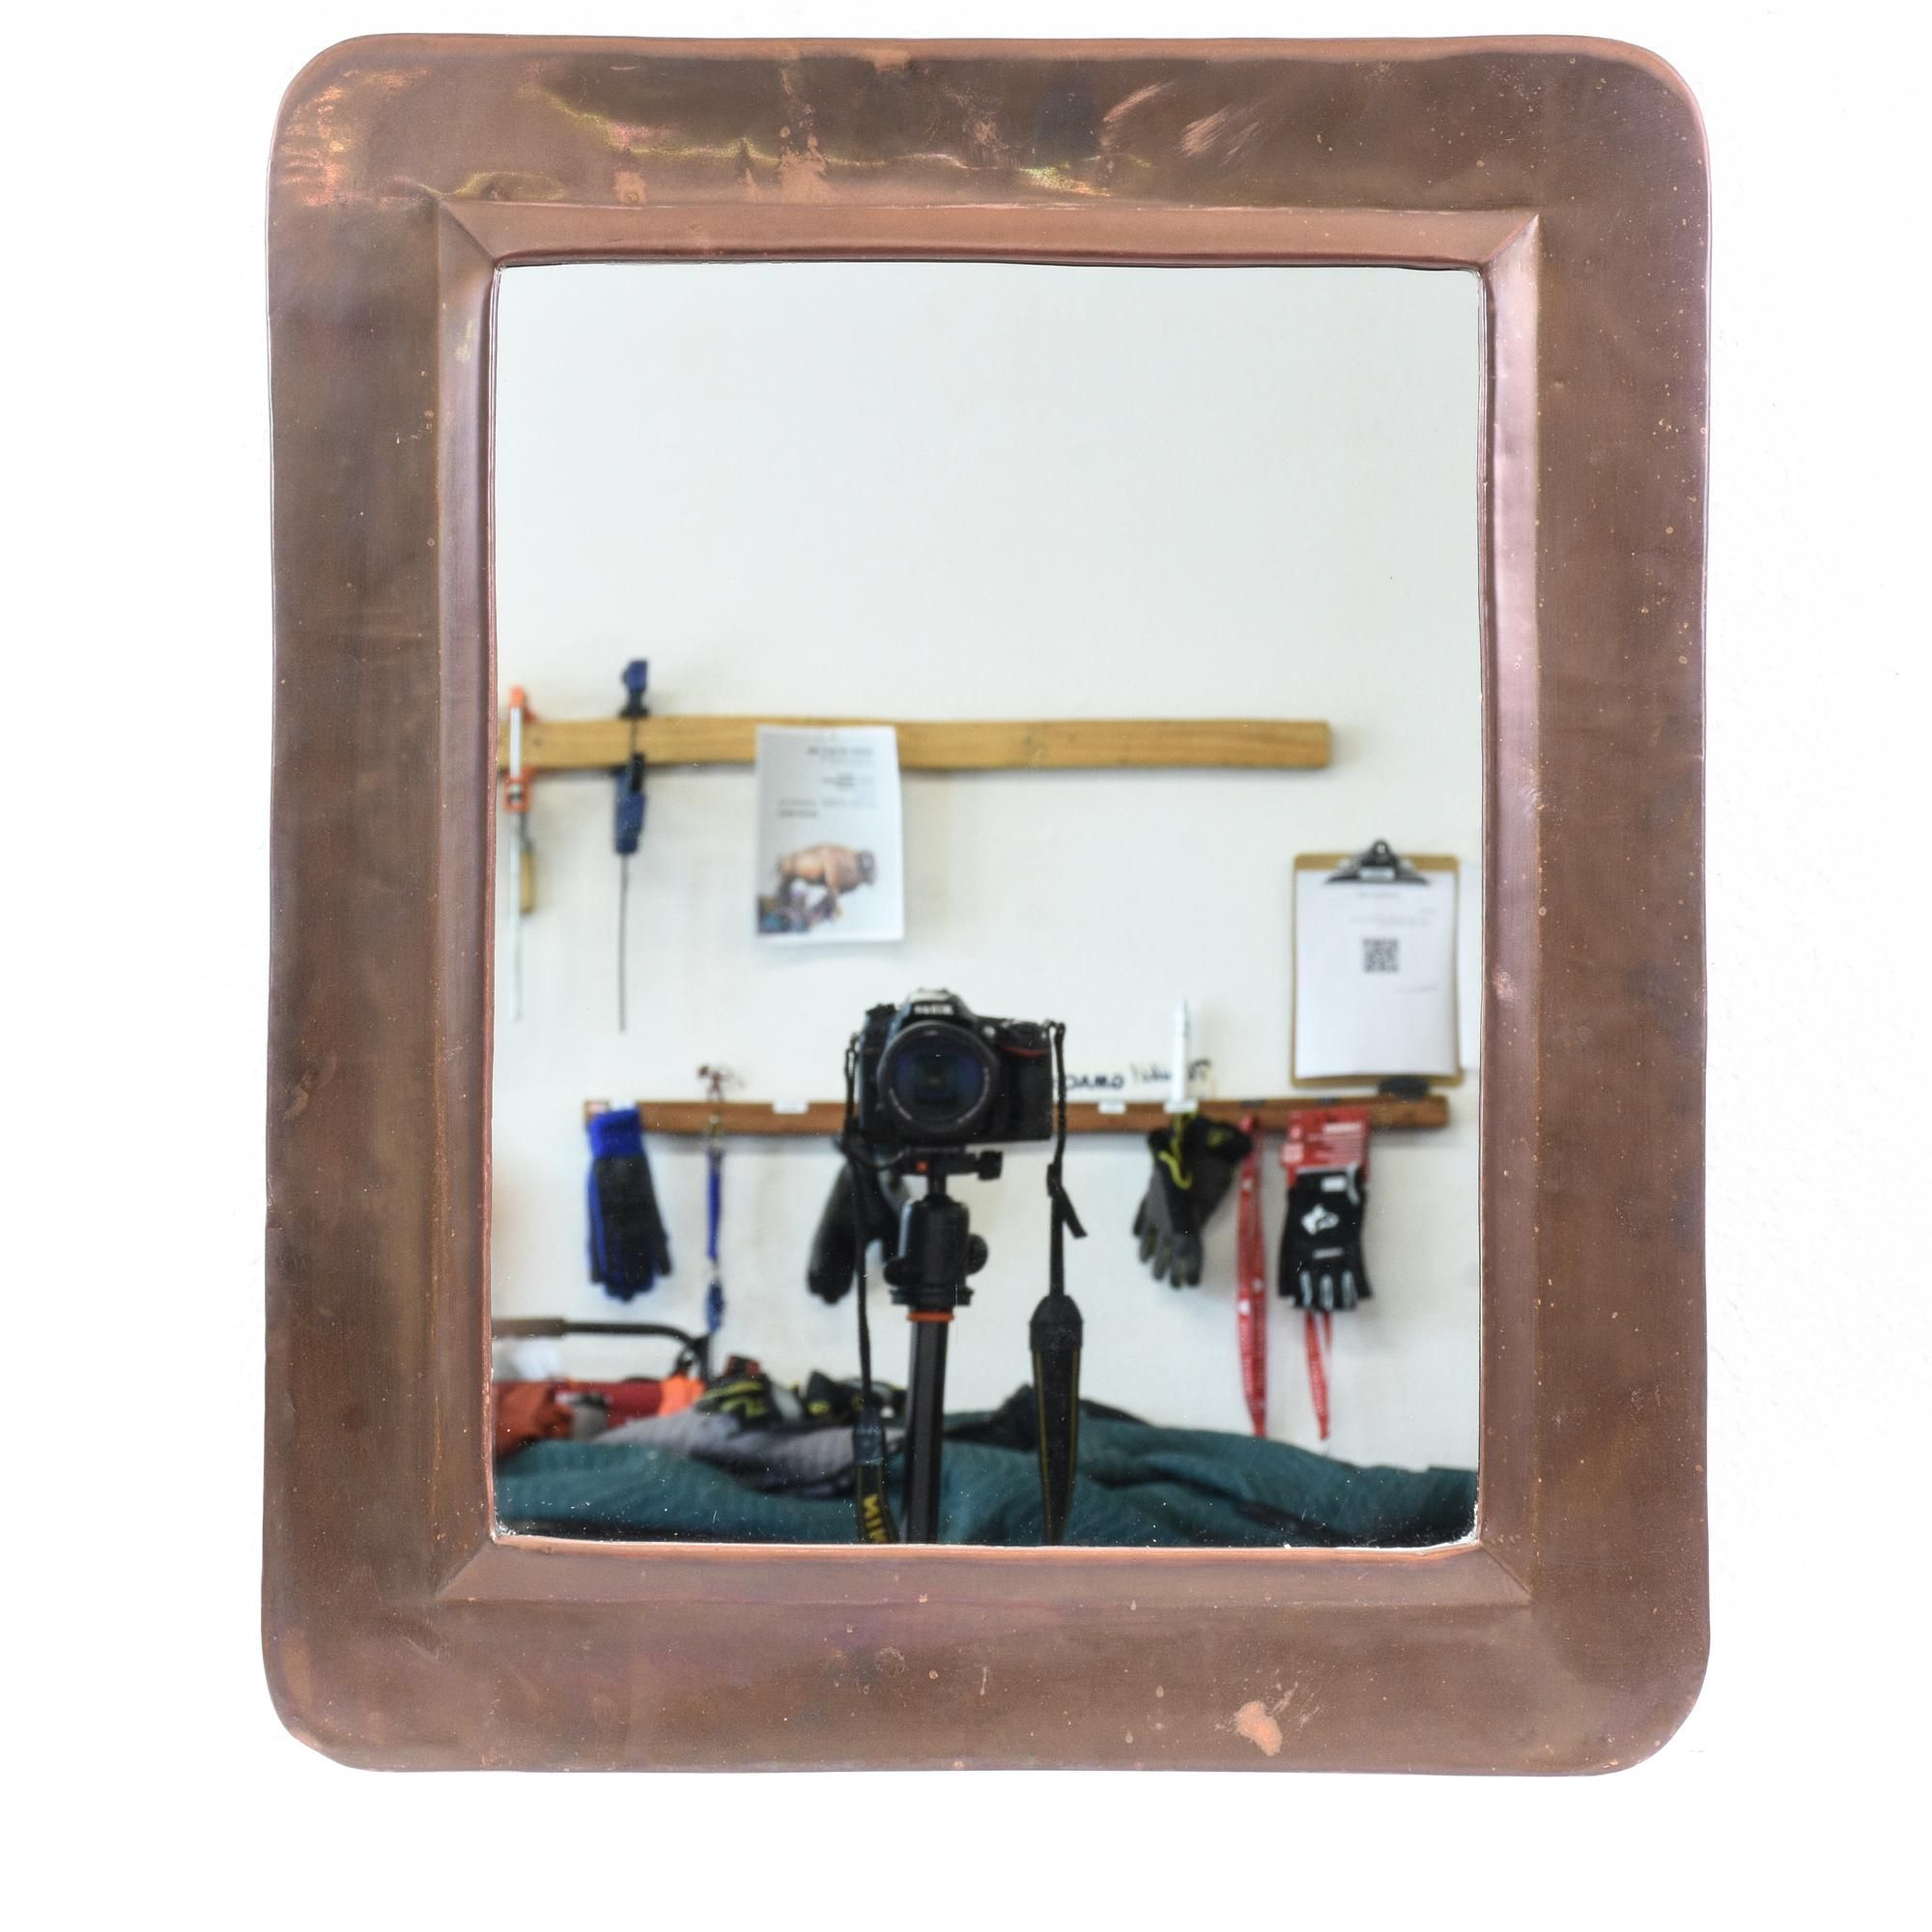 This mirror is featured in a shiny, polished brass with an antiqued finish. This bohemian style accent mirror has a rounded rectangular frame with beveled edges. Perfect for a vanity wall! #bohemian #decor #mirror #sandiegovintage #vintagefurniture